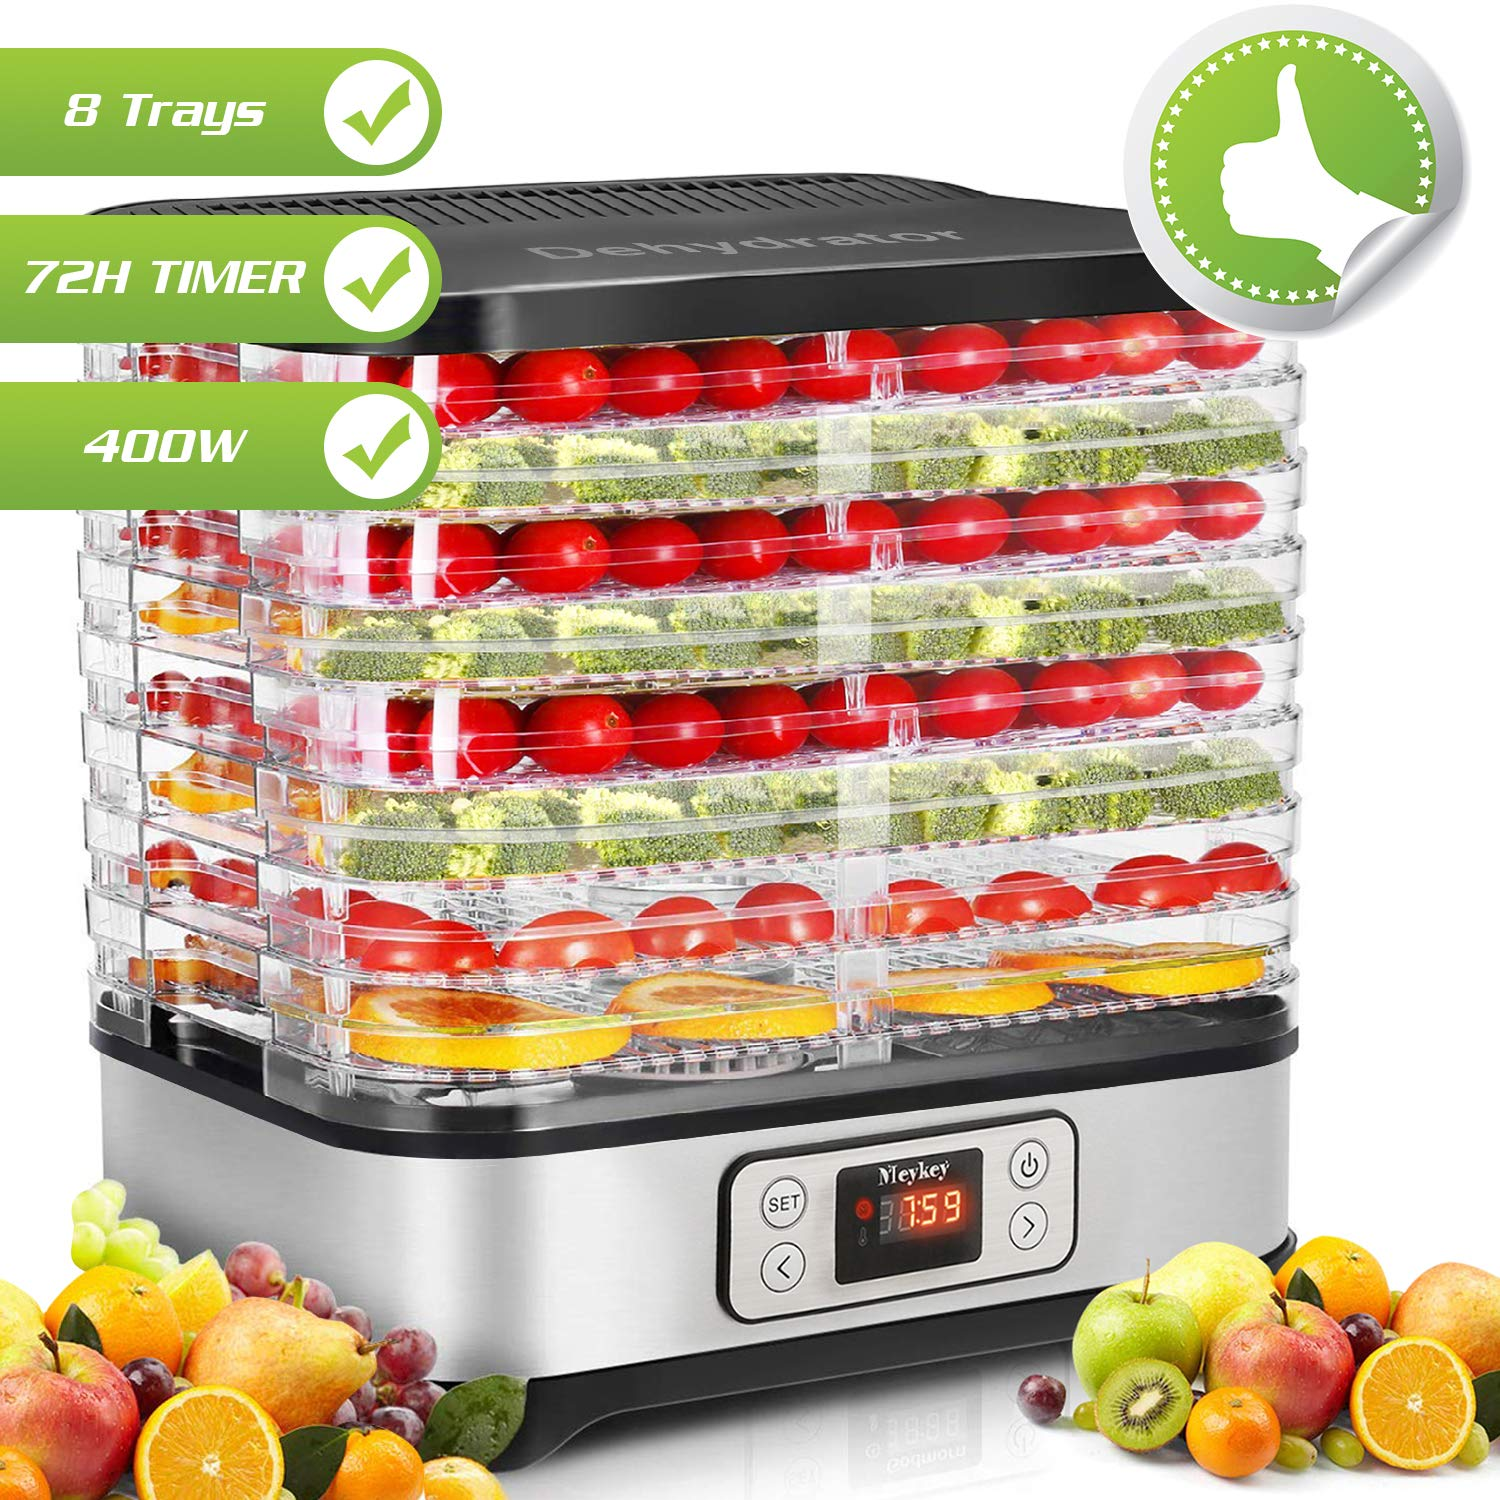 Food Dehydrator Machine, Digital Timer and Temperature Control, 8 Trays - For Beef Jerky Preserving Wild Food and Fruit Vegetable Dryer in Home Kitchen, BPA Free/400 Watt by COOCHEER